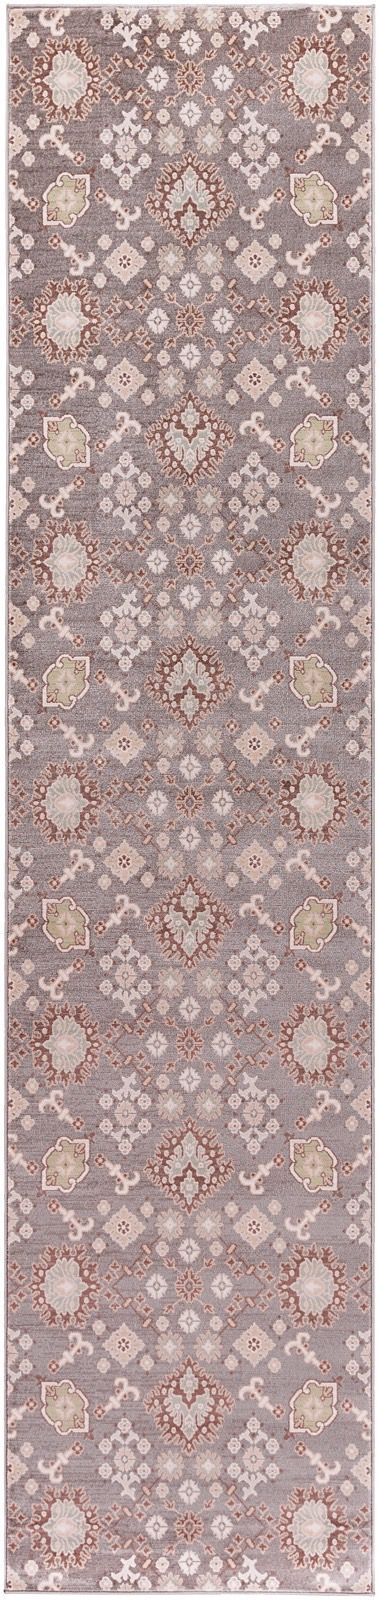 surya garnett traditional area rug collection